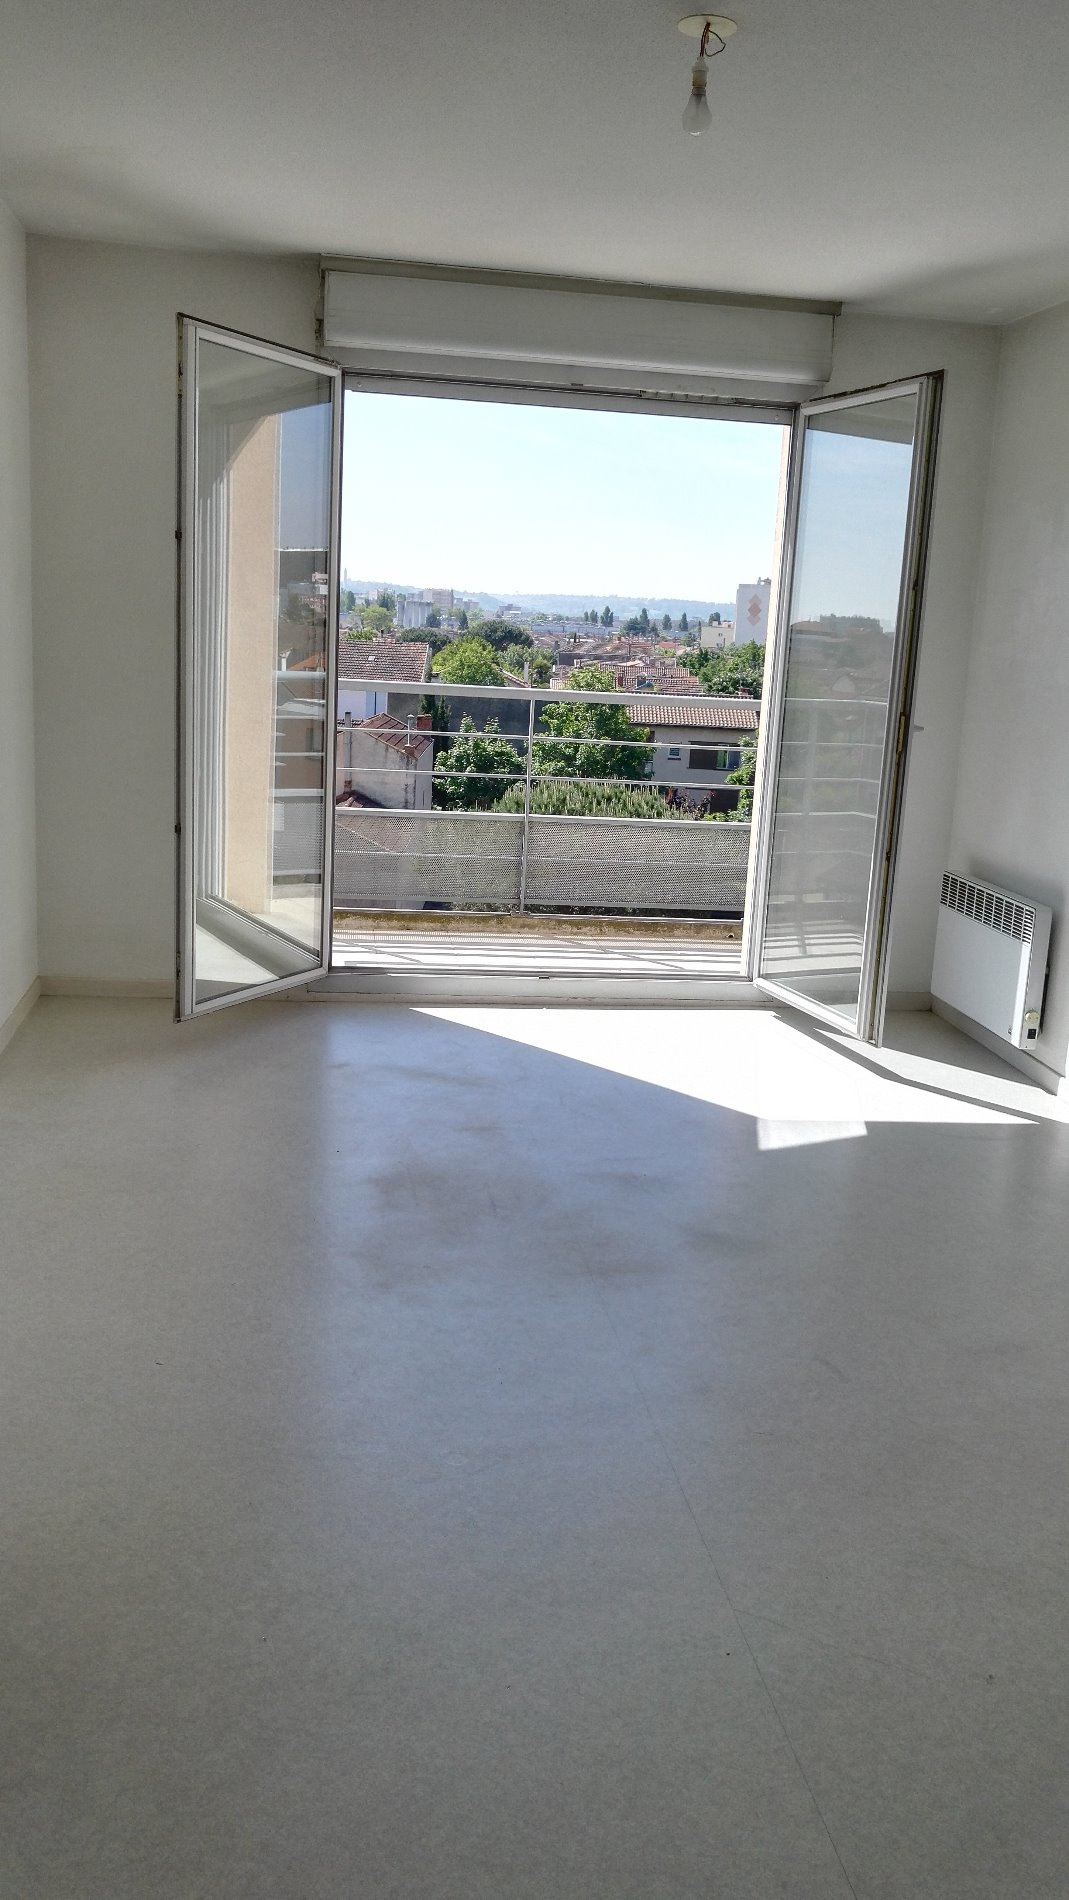 Annonce location appartement toulouse 31100 38 m 595 for Location garage toulouse 31100